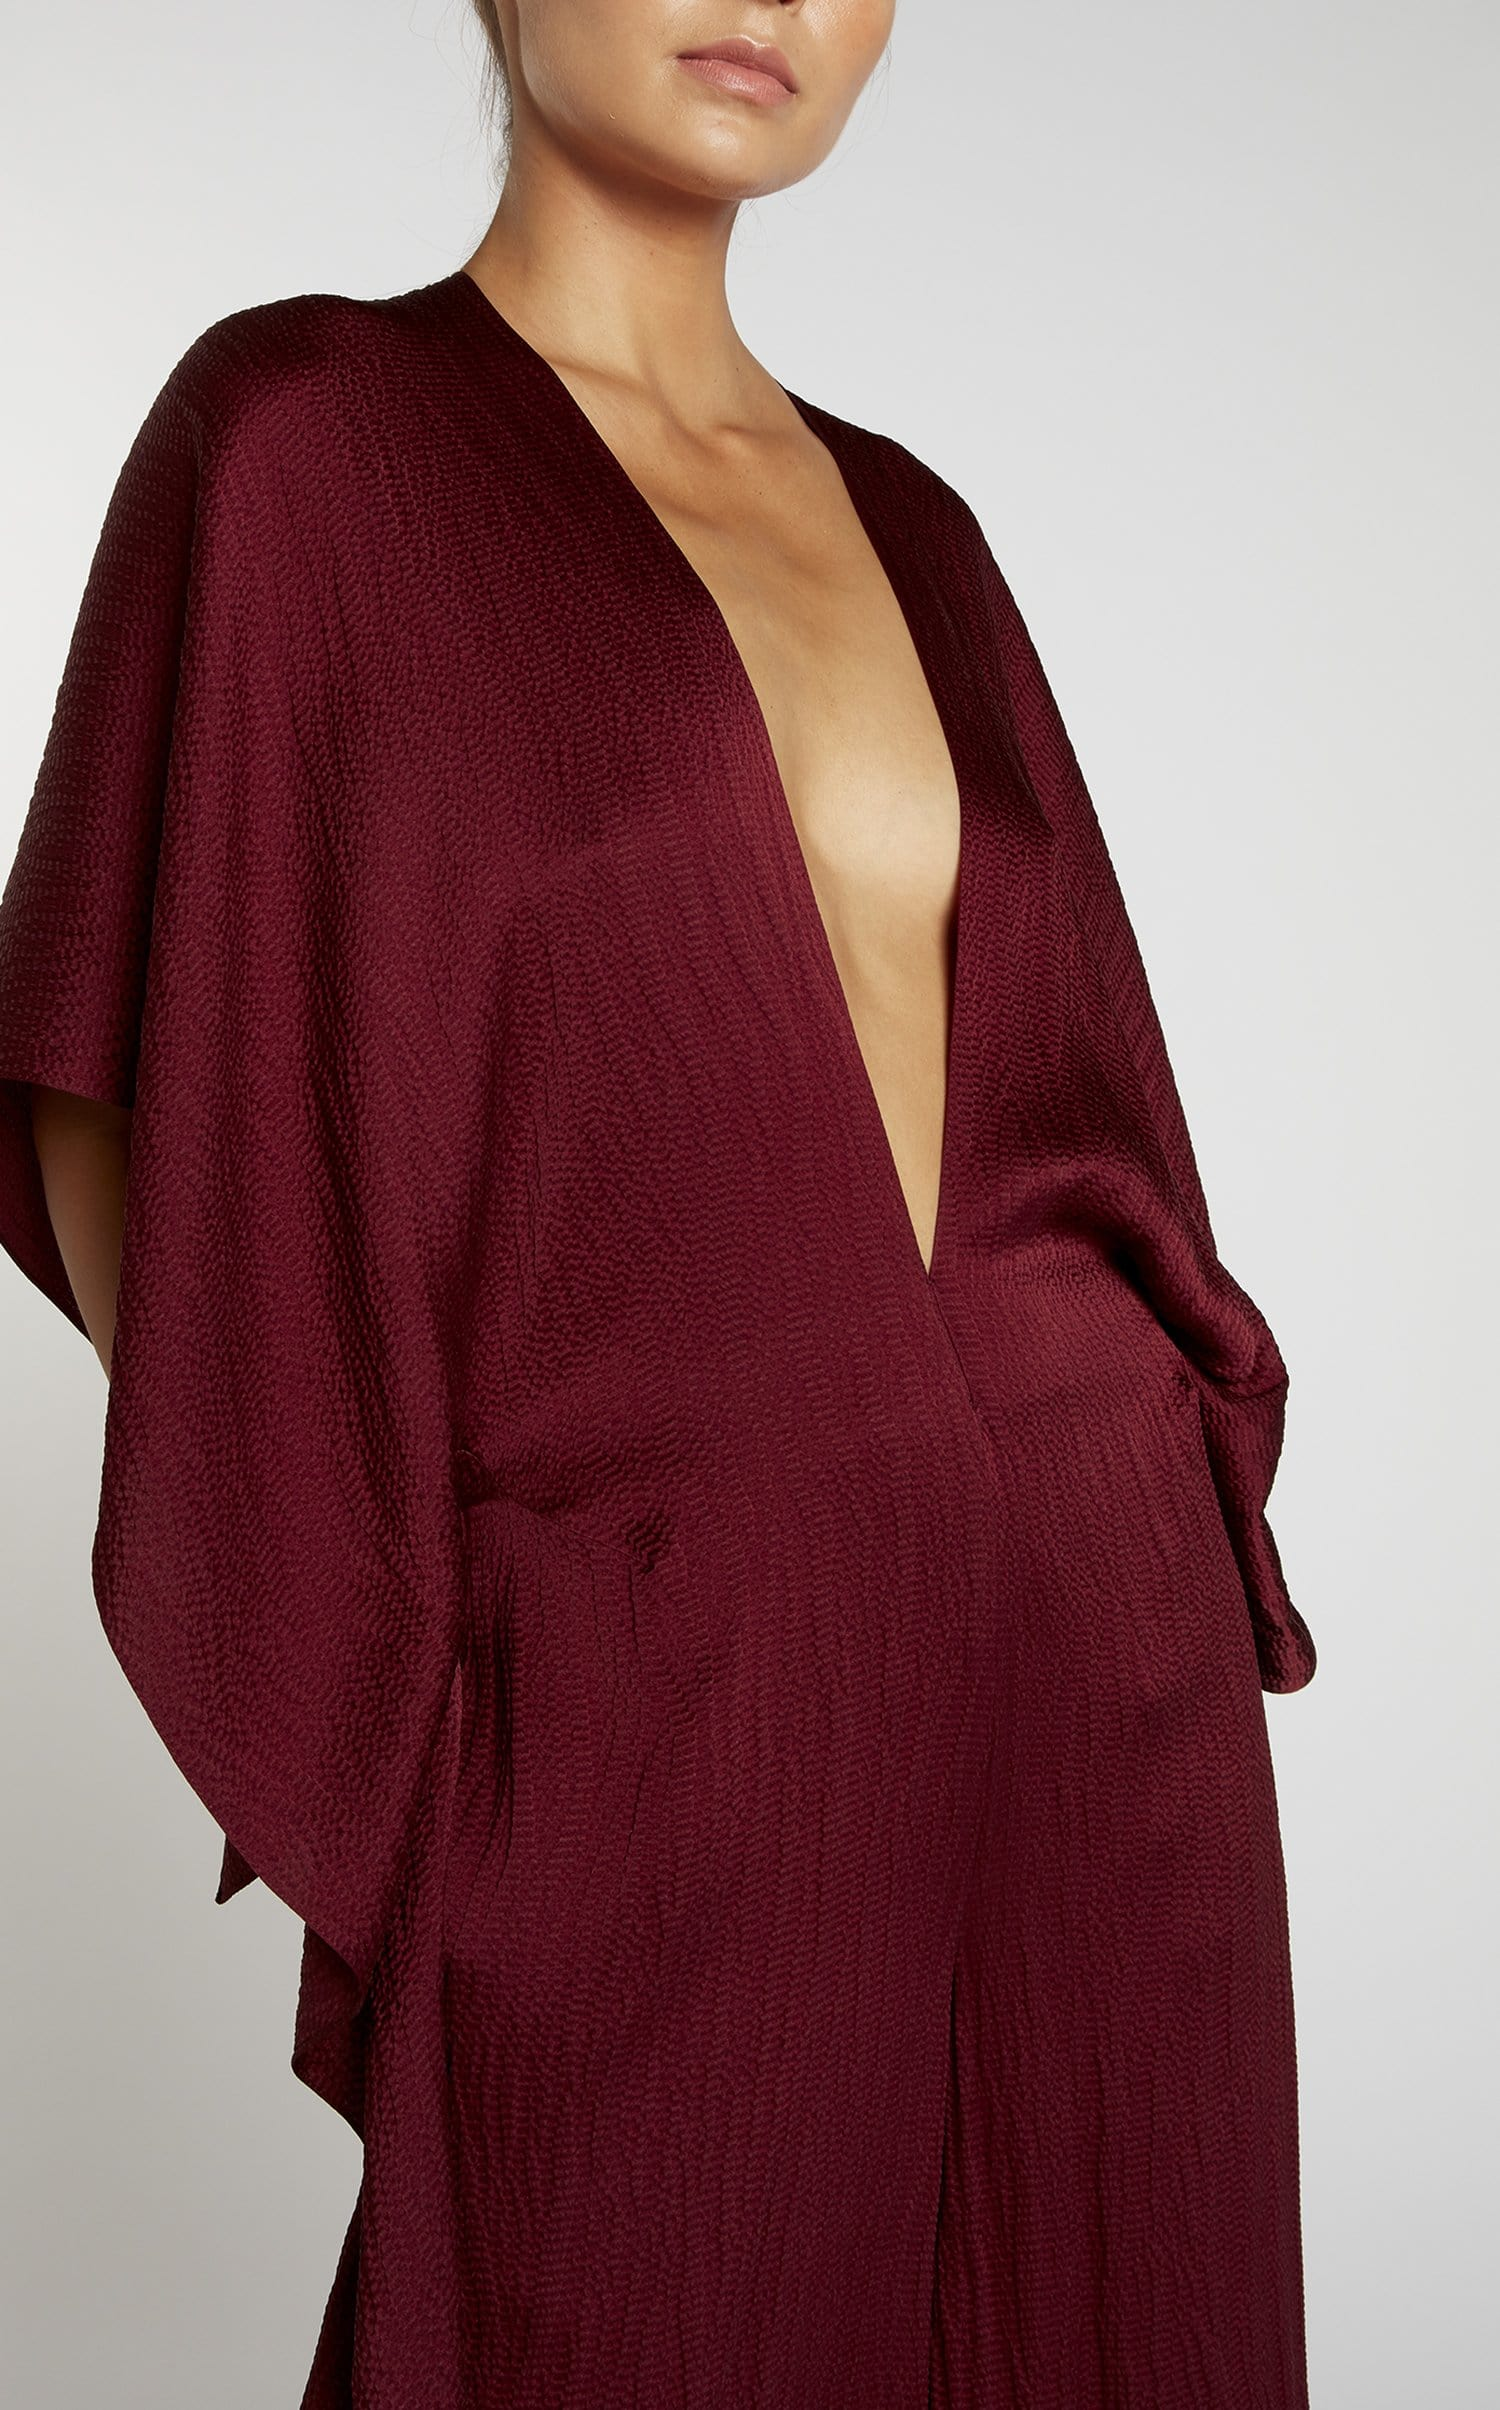 Auclair Jumpsuit In Cabernet from Roland Mouret